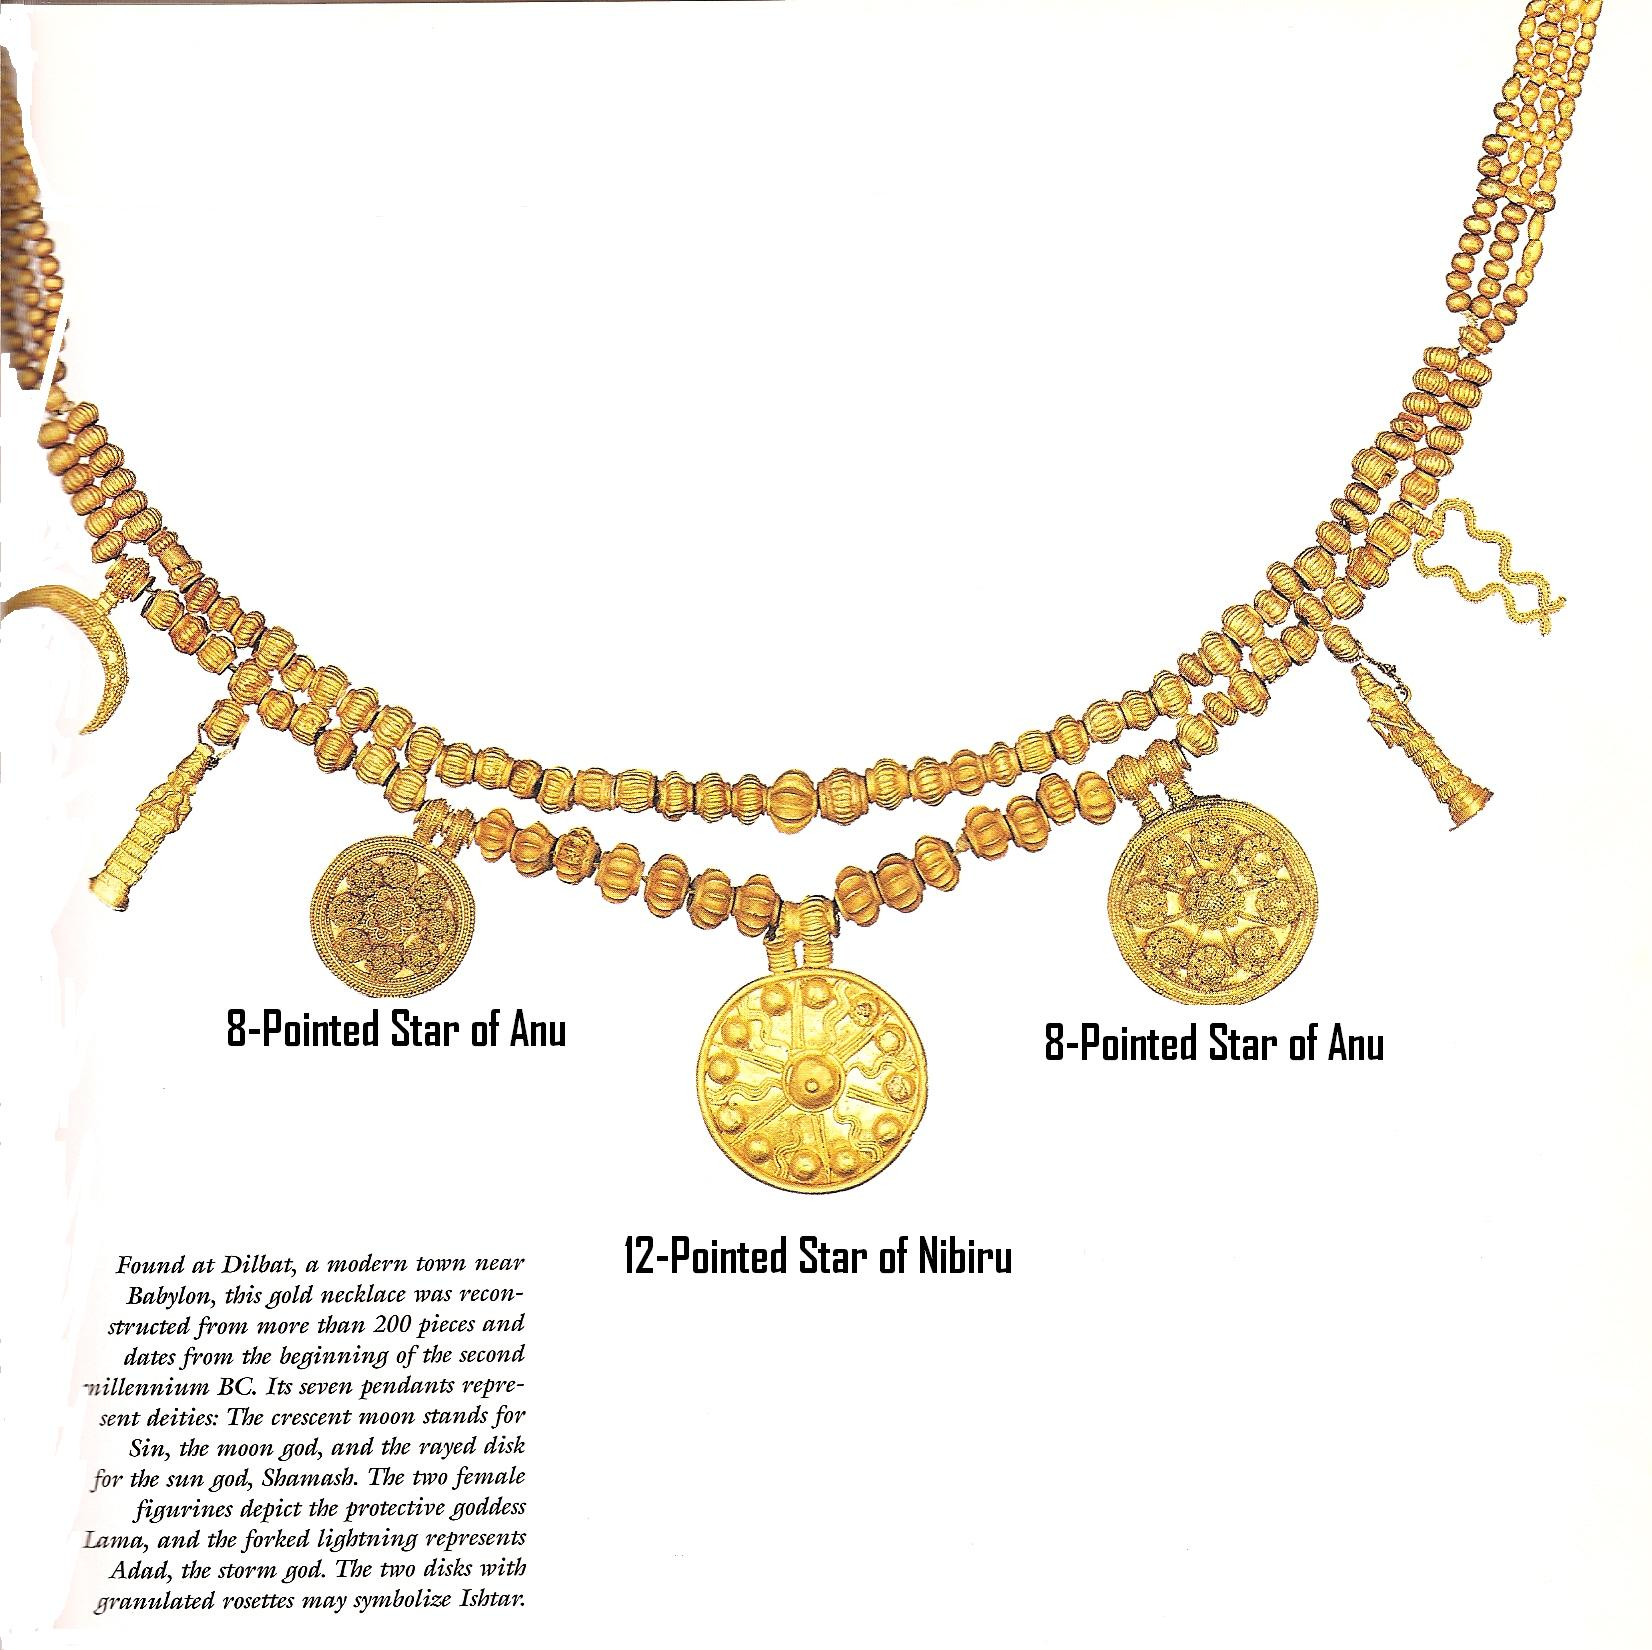 Jewelry - 2,000 B.C. artefact discovered from Babylon, man was taught to work with fire & metals by alien giant god Gibil, creating weapons & also jewelry